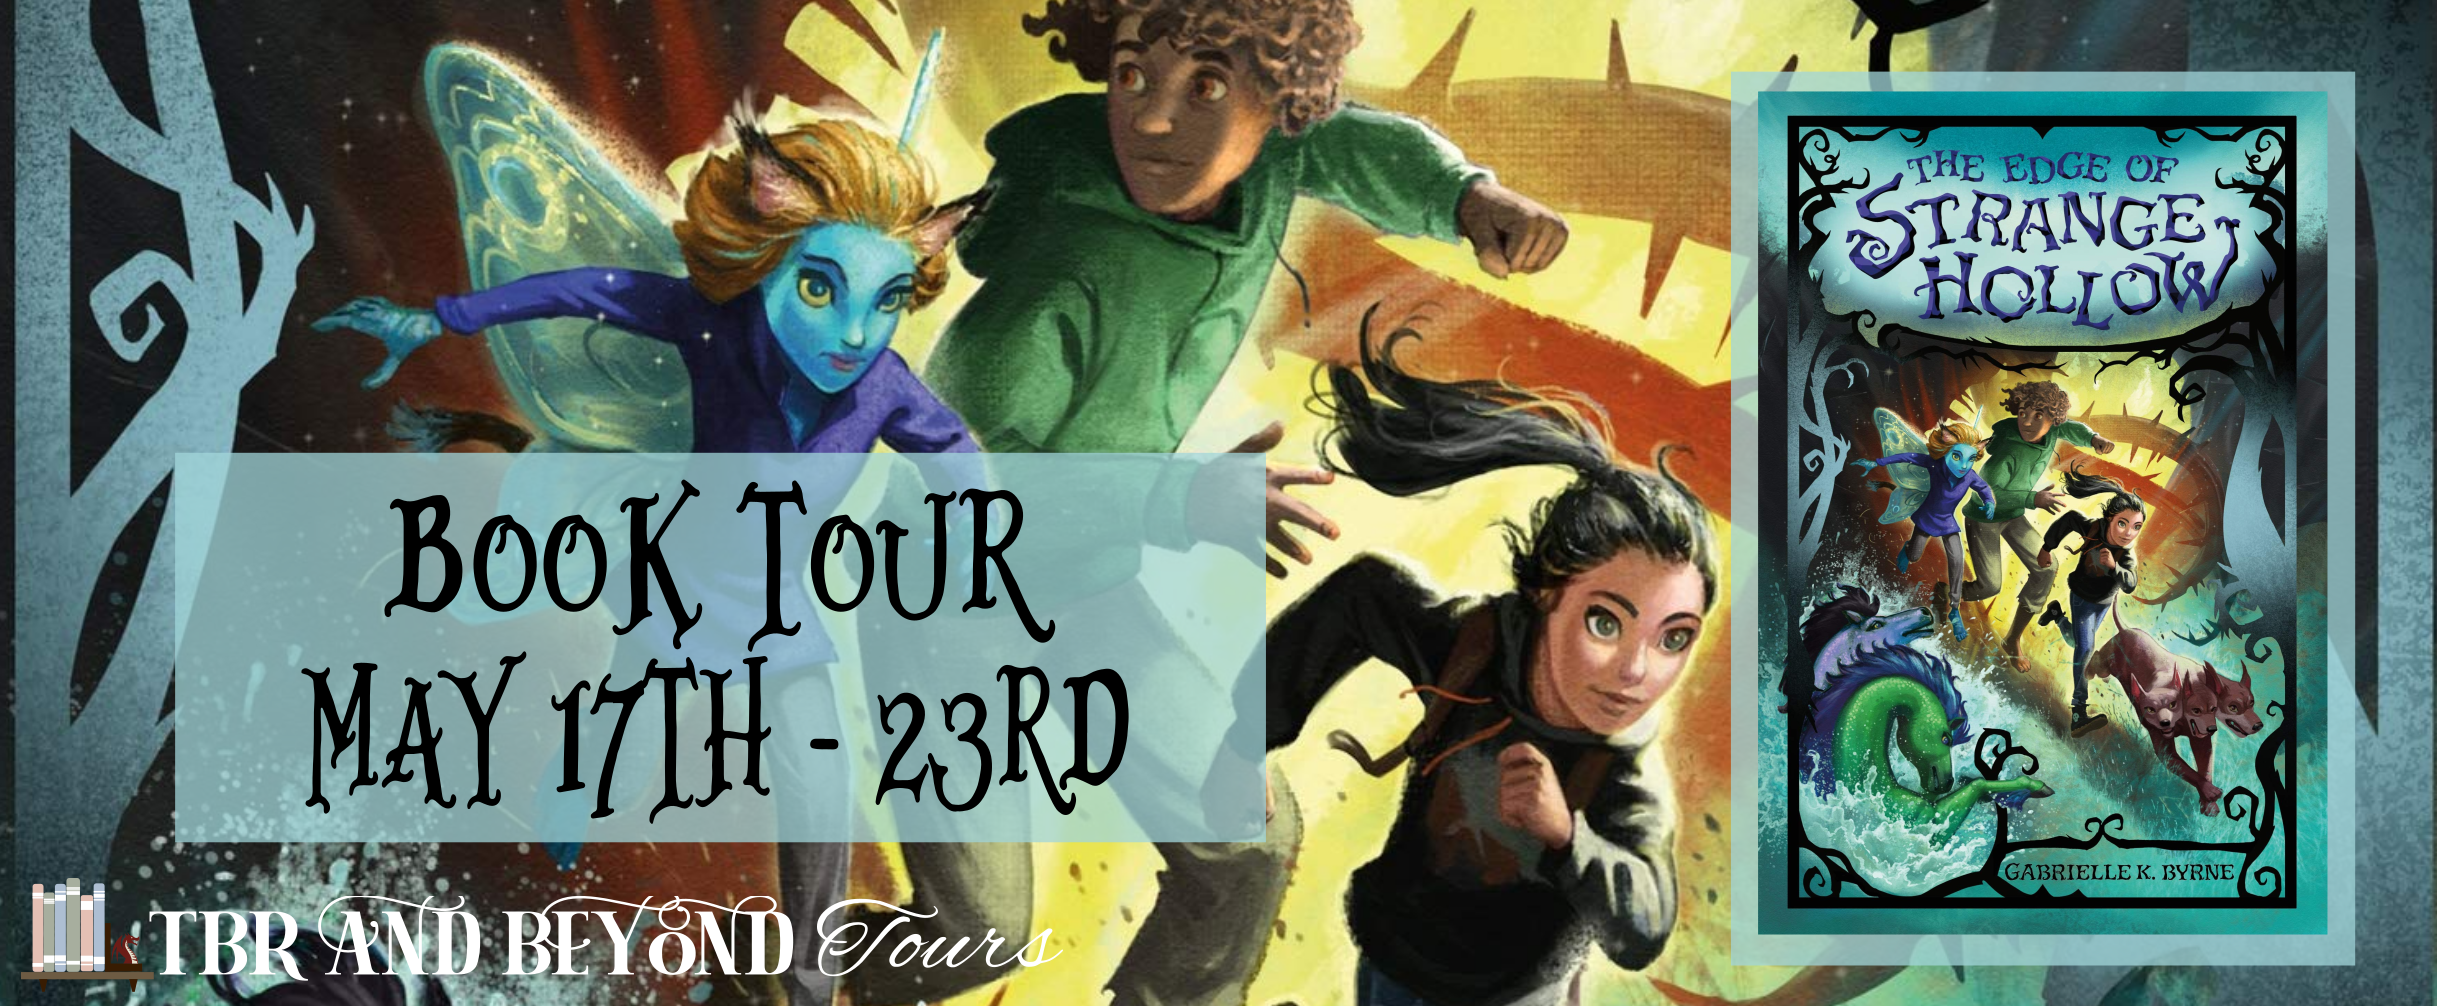 Blog Tour: The Edge of Strange Hollow by Gabrielle K. Byrne (Interview + Giveaway!)